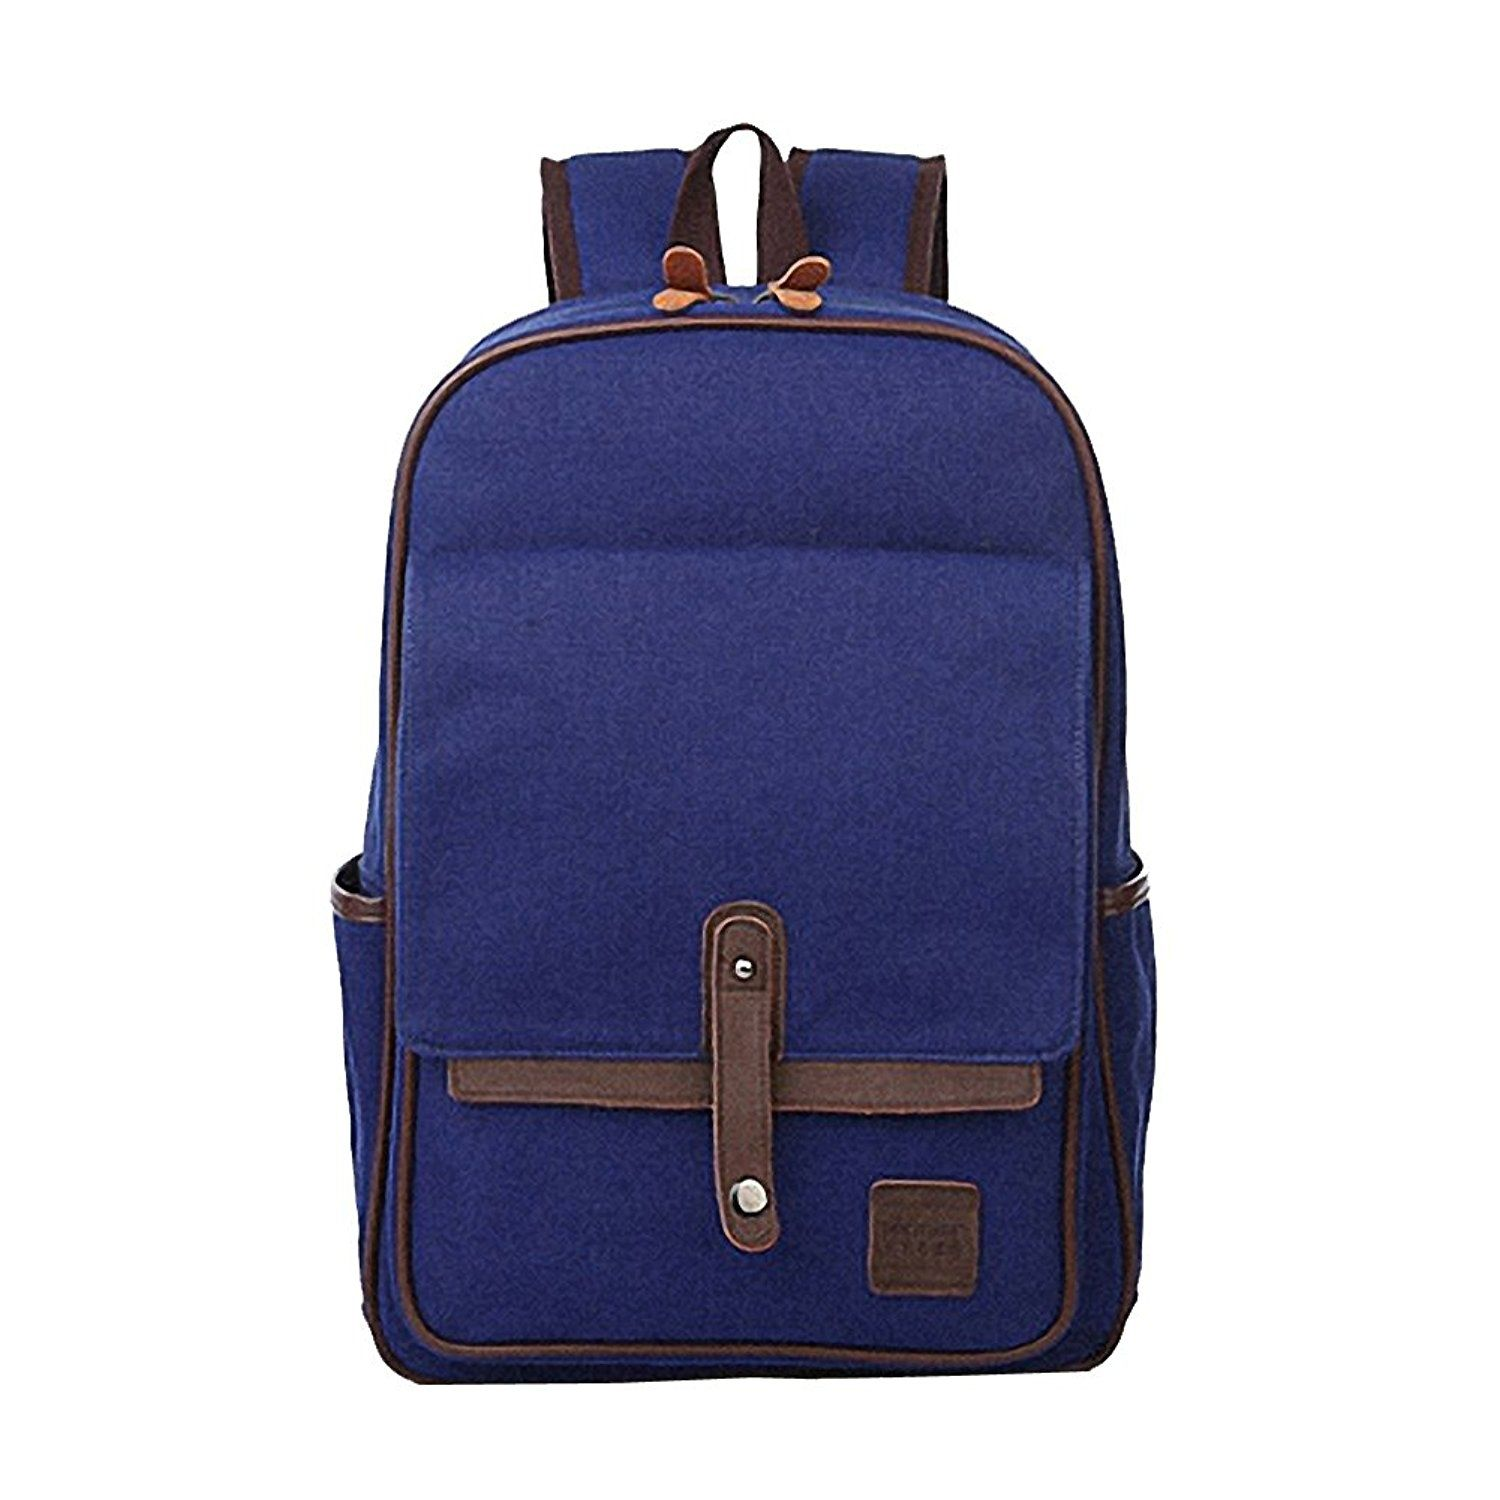 Canvas Backpack Casual Daypacks Fashion Girls Outdoor Travel Hiking Camping Bags